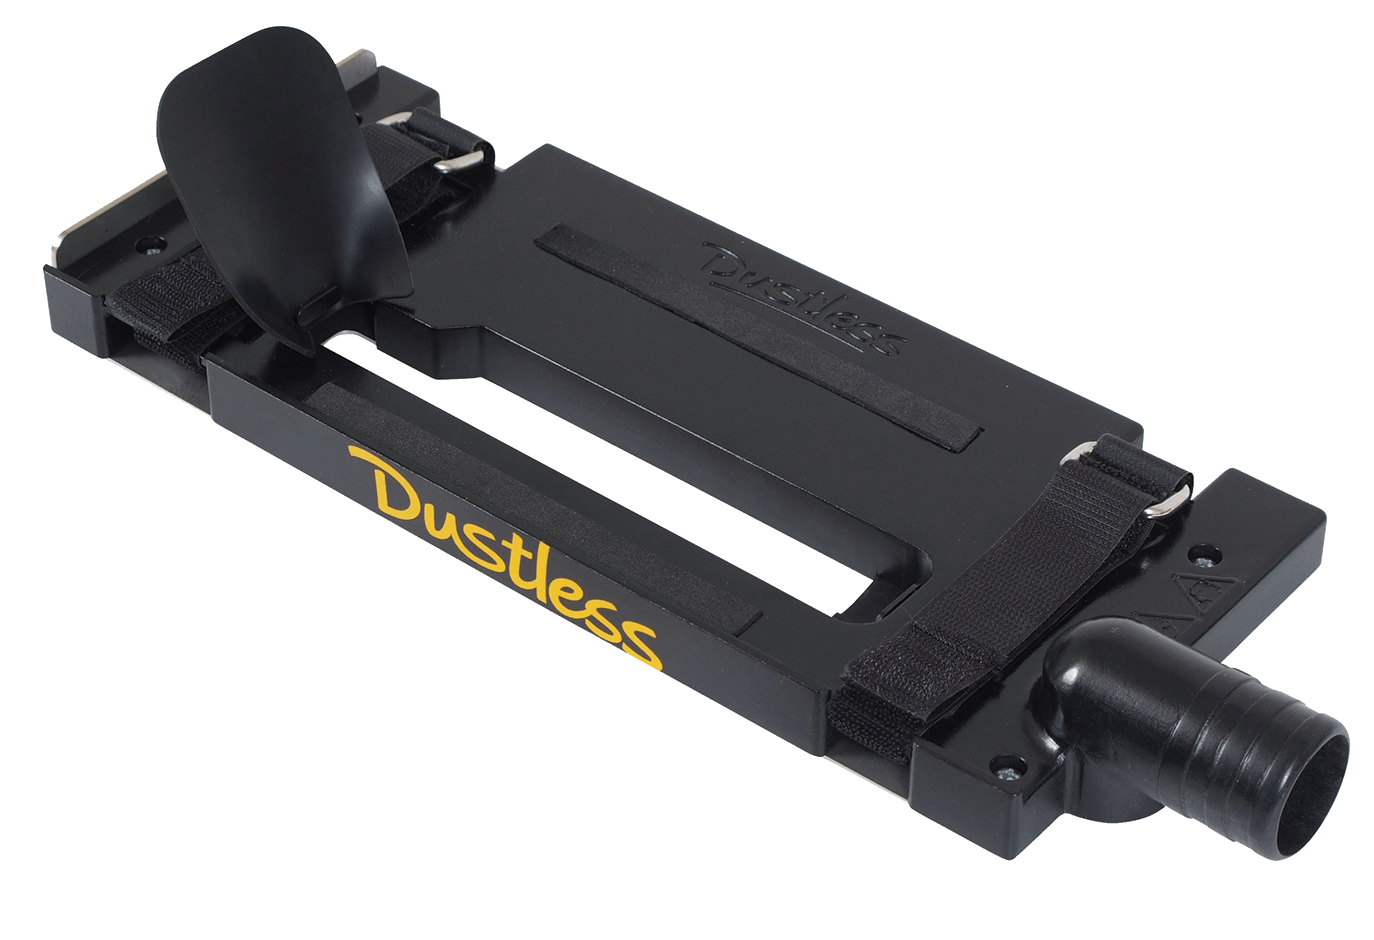 Dustless Technologies announces new Universal-Fit Dust Control Shroud for Worm Drive and Hypoid Circular Saws